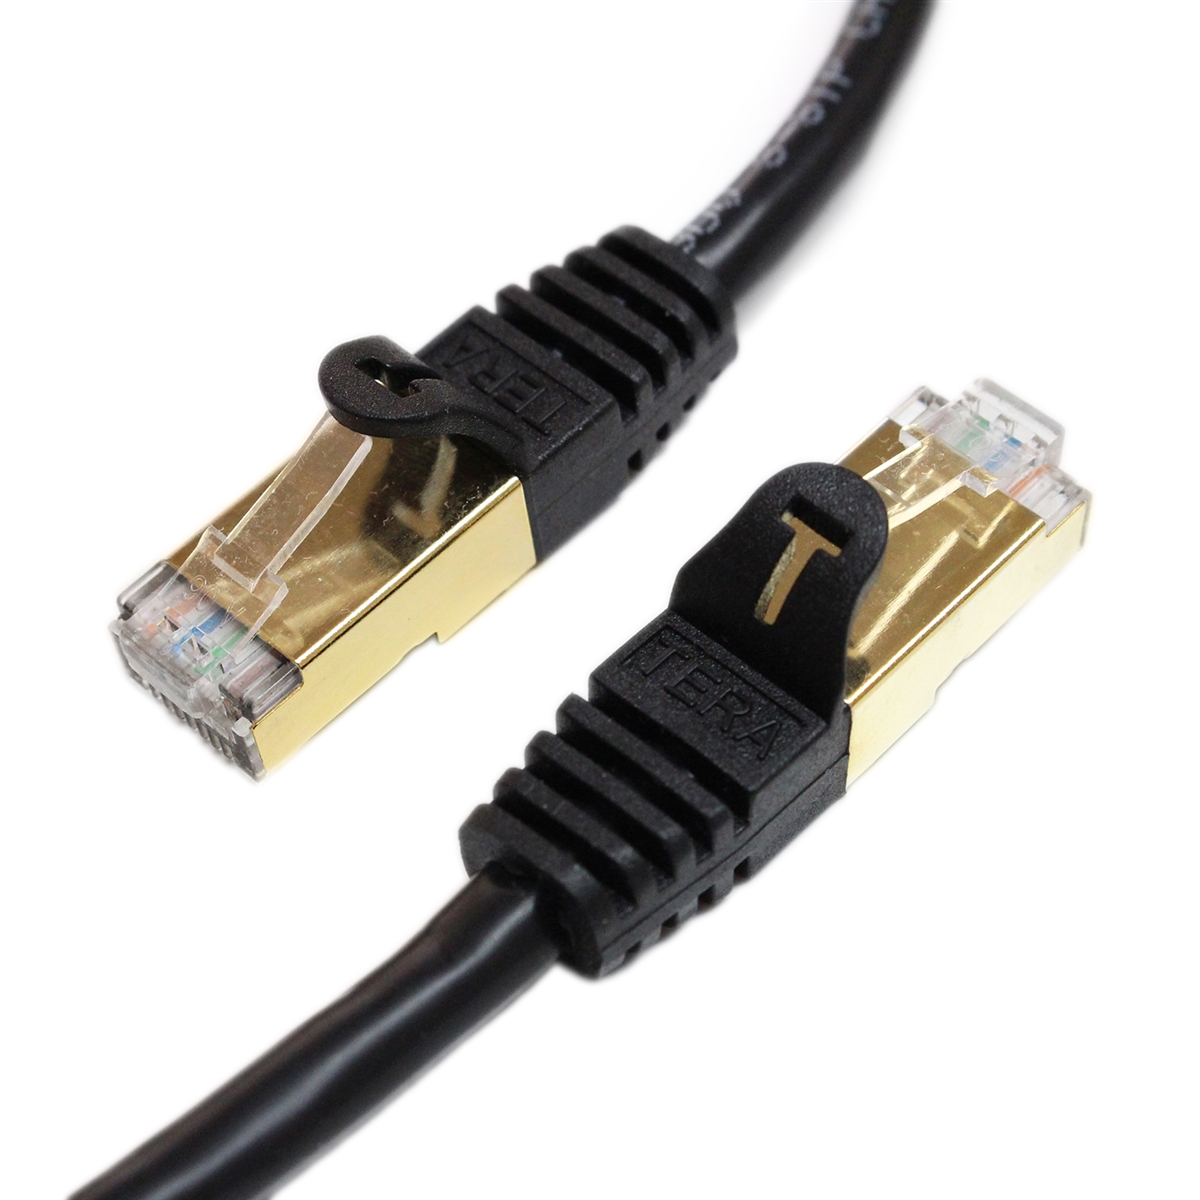 Tera Grand - Premium CAT7 Double Shielded 10 Gigabit 600MHz Ethernet Patch Cable for Modem Router LAN Network - Built with Gold Plated & Shielded RJ45 Connectors, 3 Feet Black